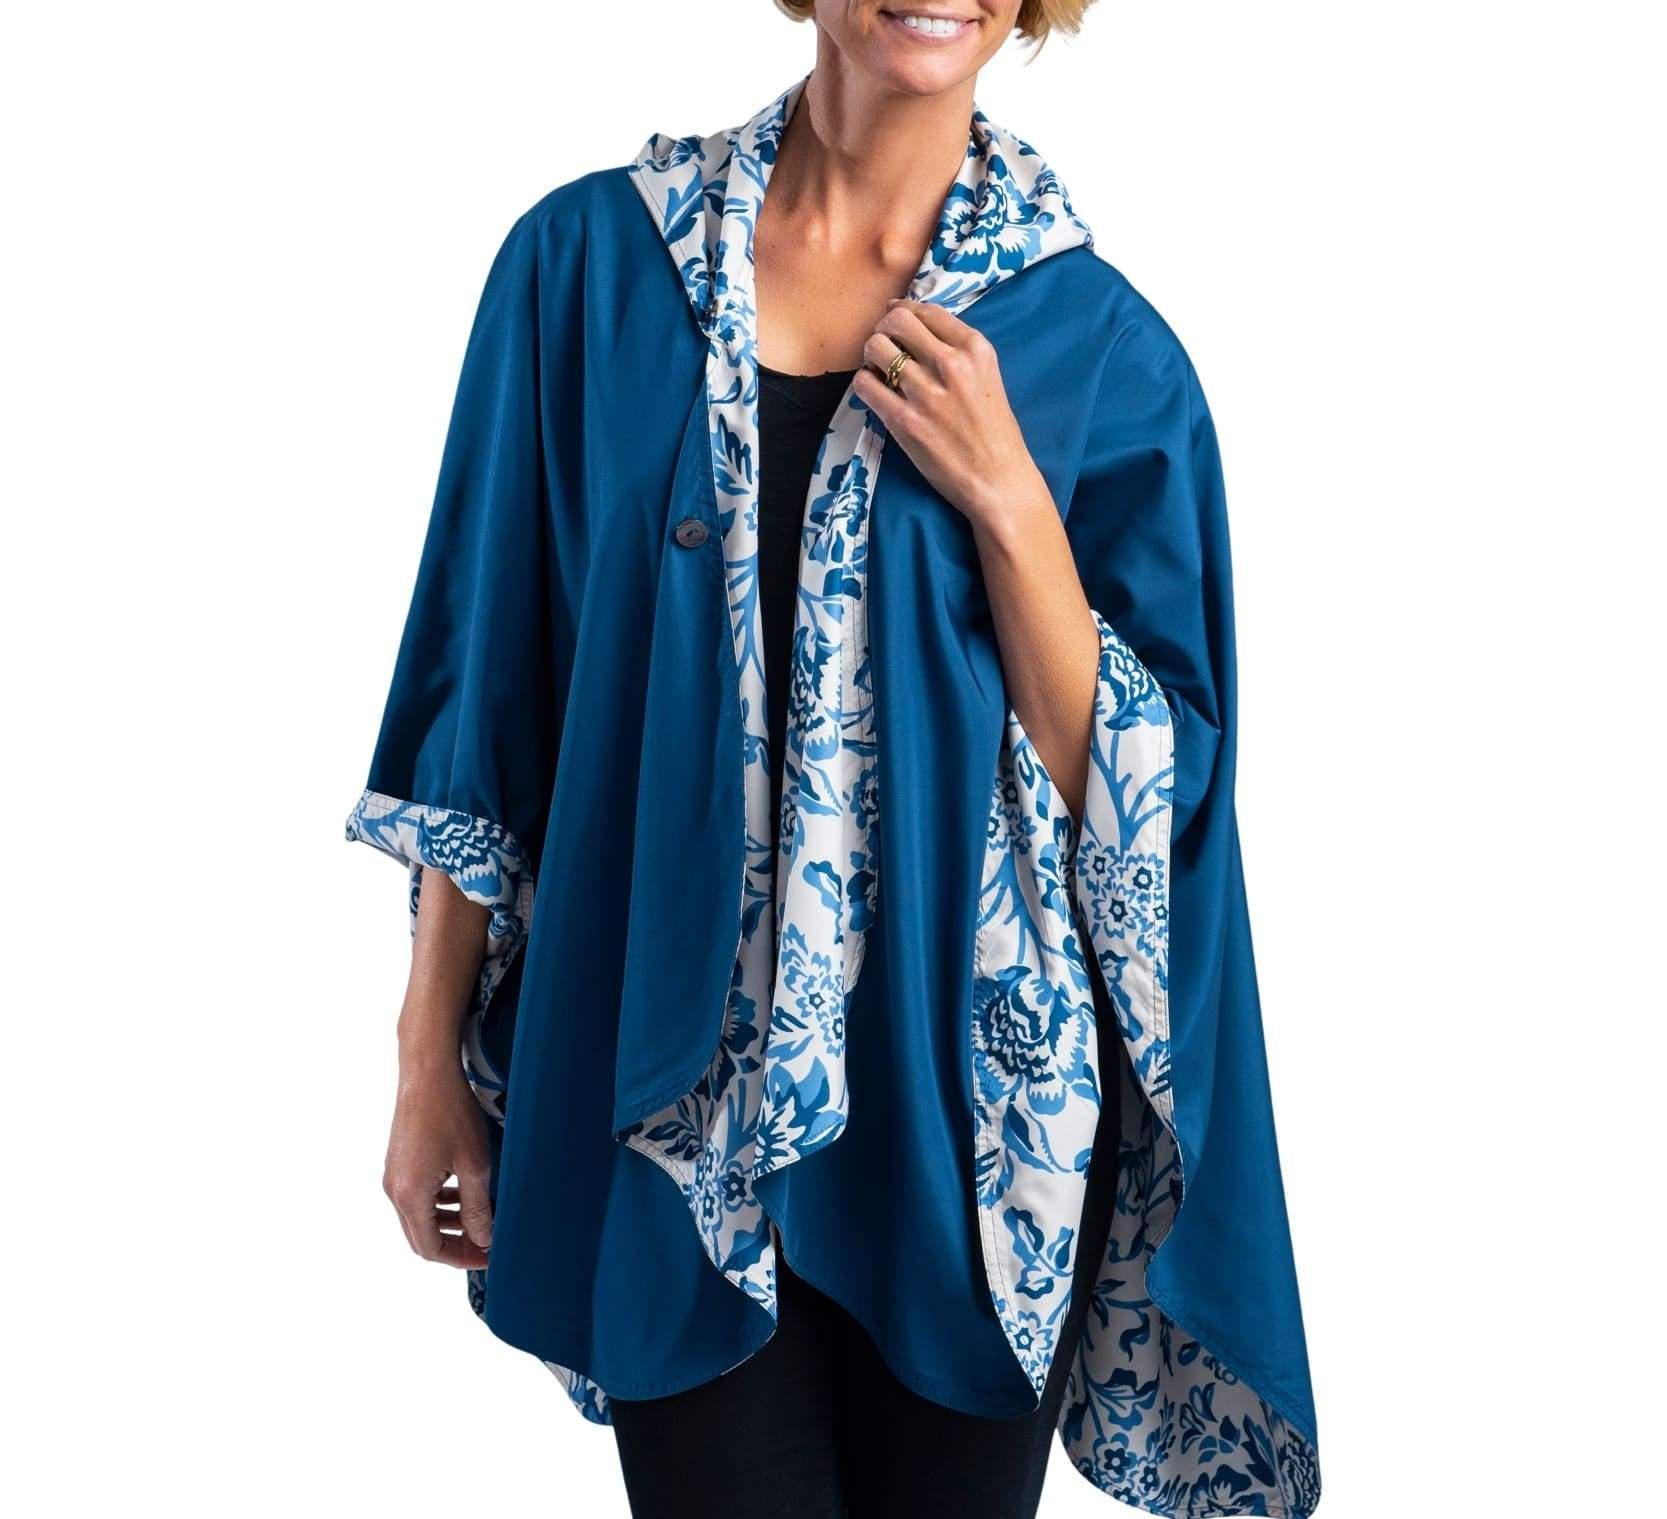 RainCaper Navy/Blue Garfield Print Wind & Rainproof Travel Cape